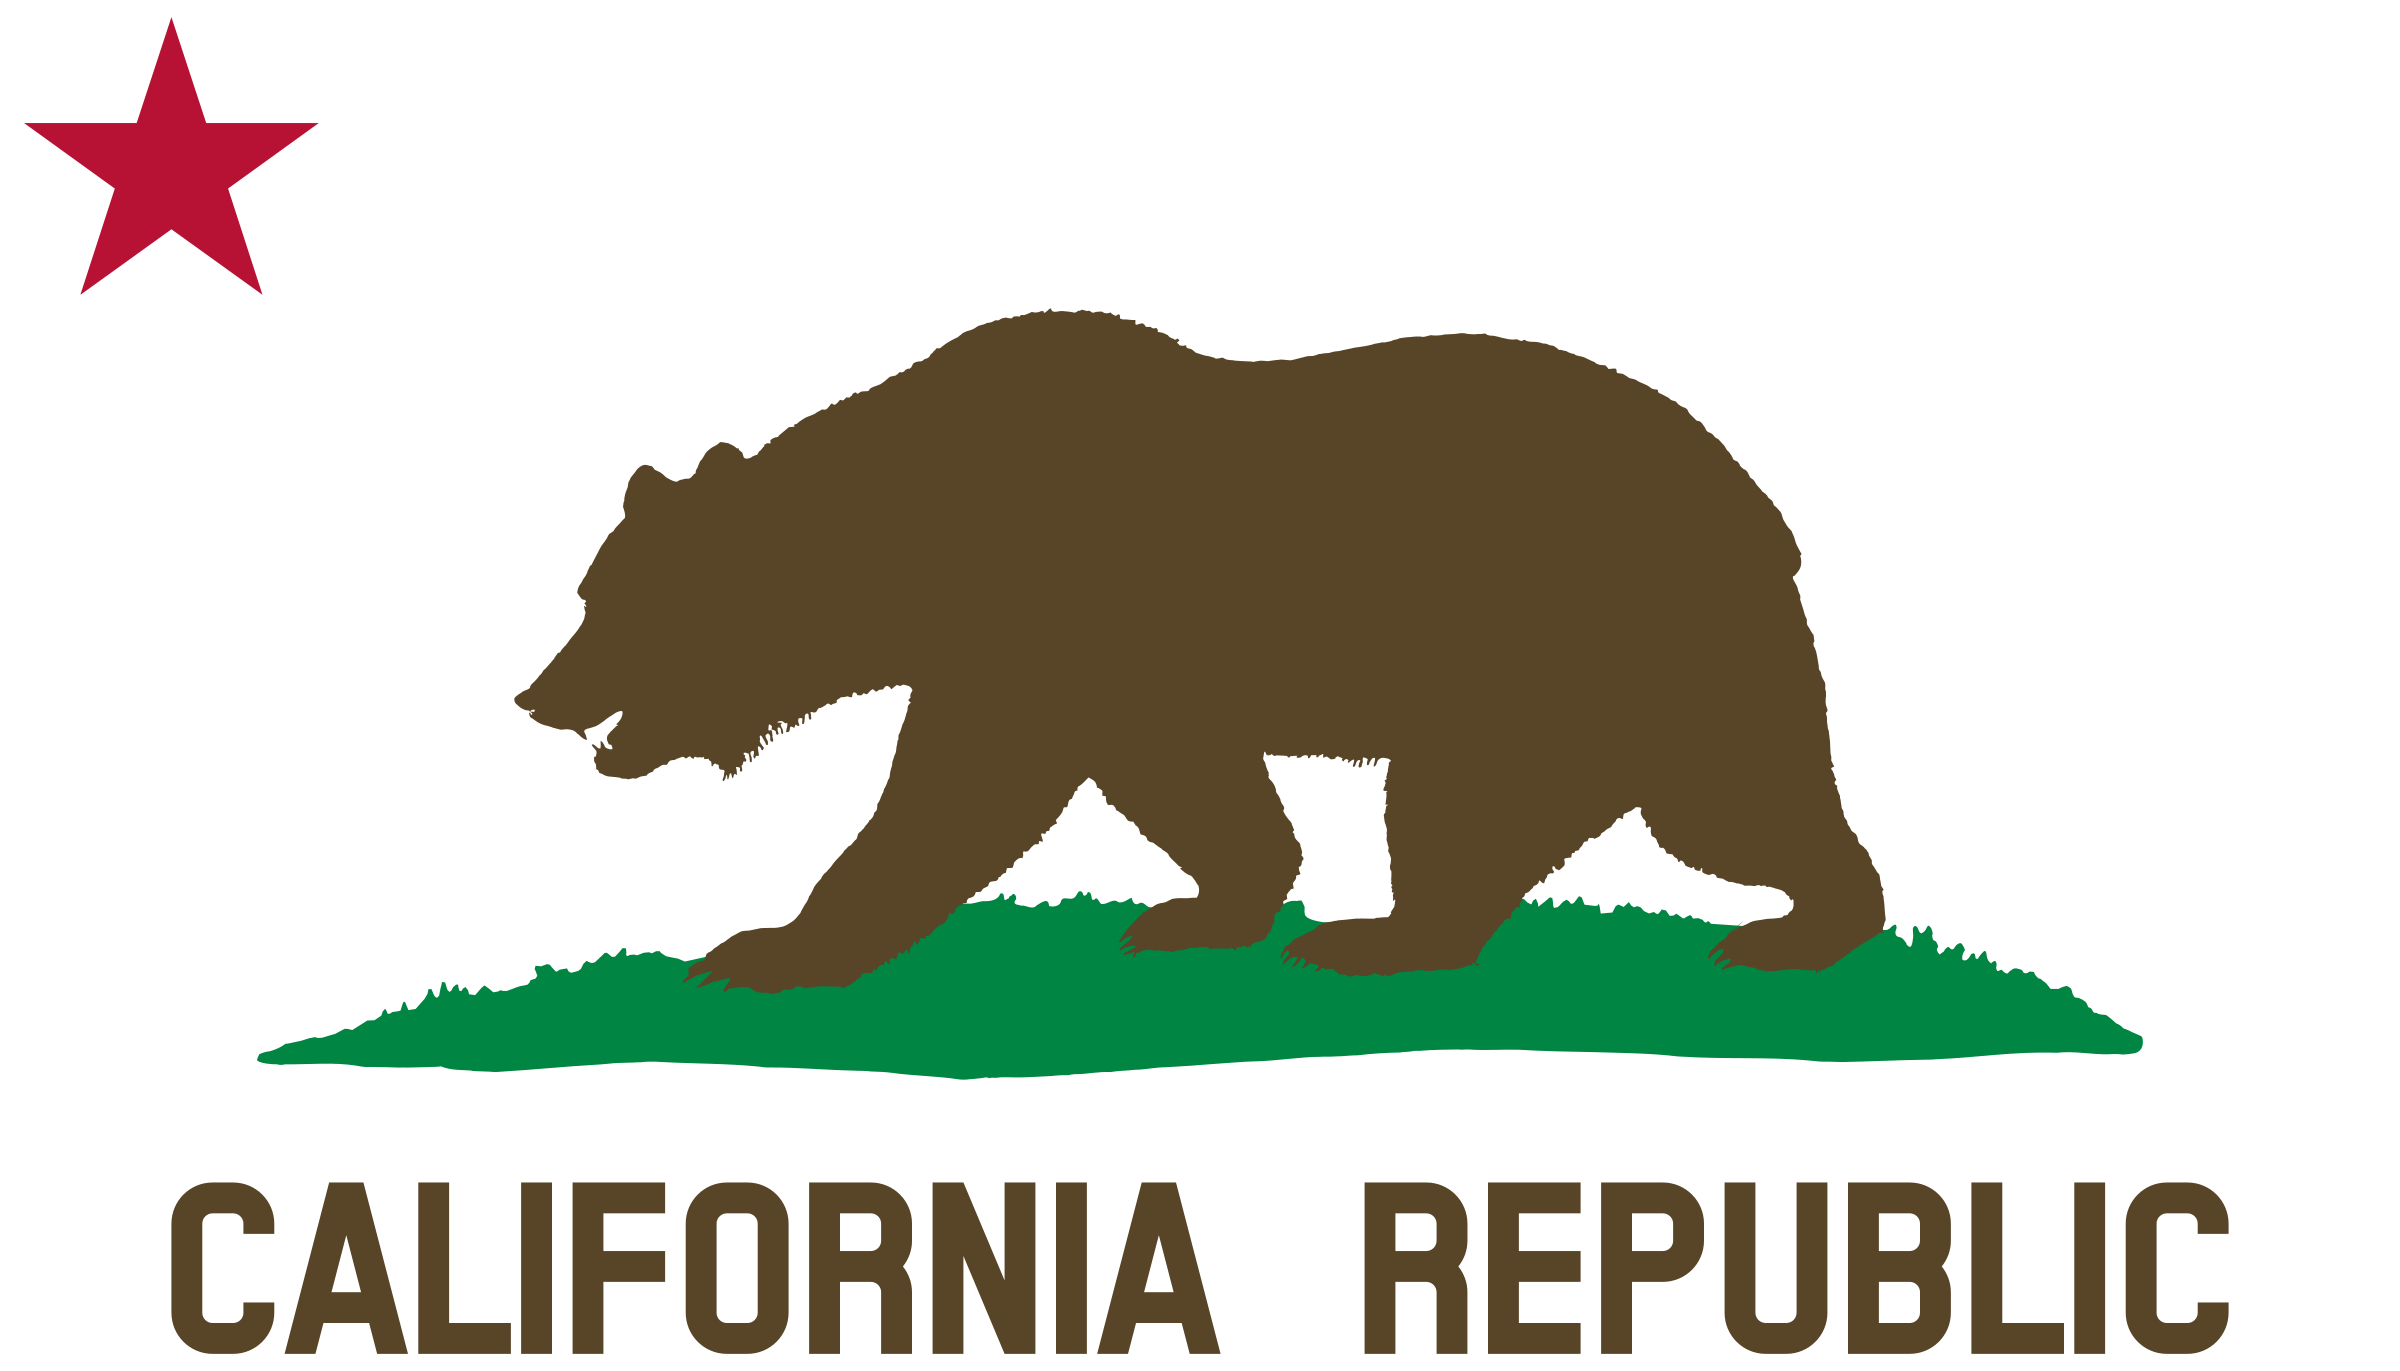 Rugged flag baseball clipart vector royalty free Clipart - Flag of California (Bear, Star, Plot, Title, Solid ... vector royalty free